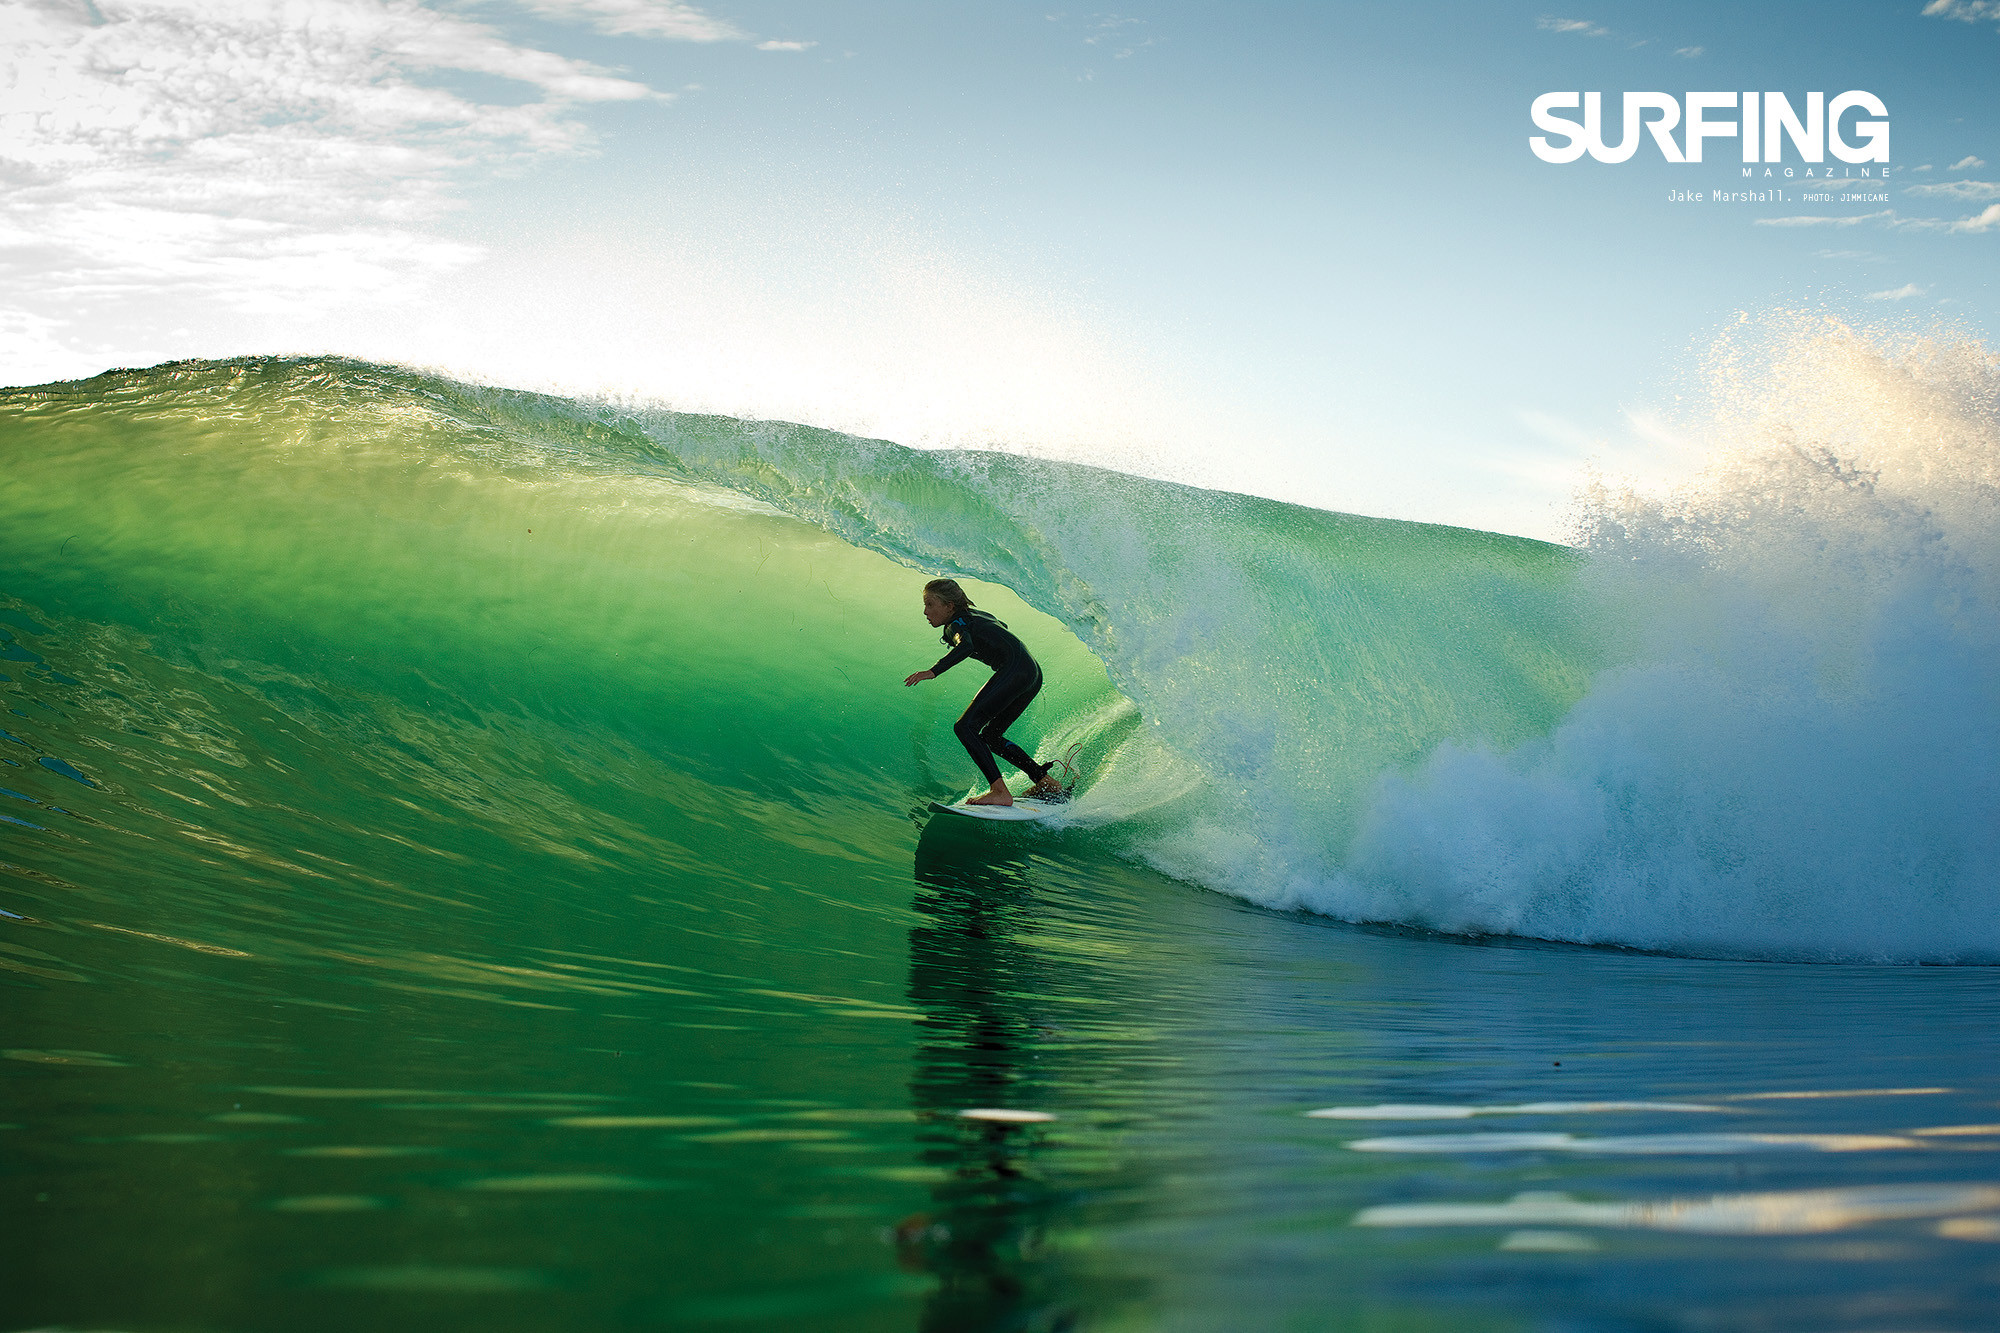 2000x1333 100 Quality HD Surfing Wallpapers